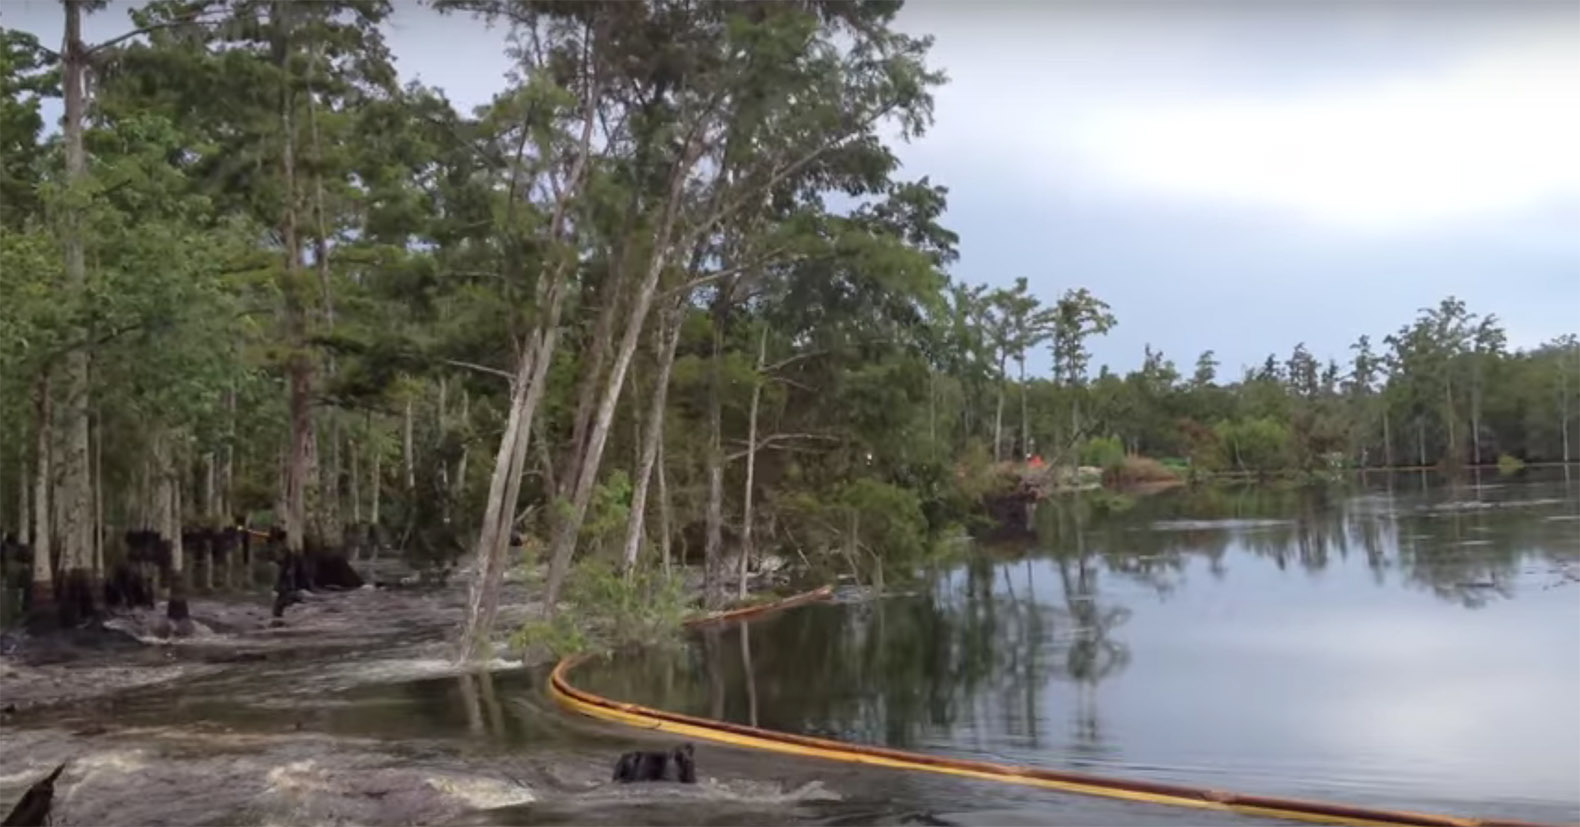 Video 26 Acre Louisiana Sinkhole Swallows Whole Trees In